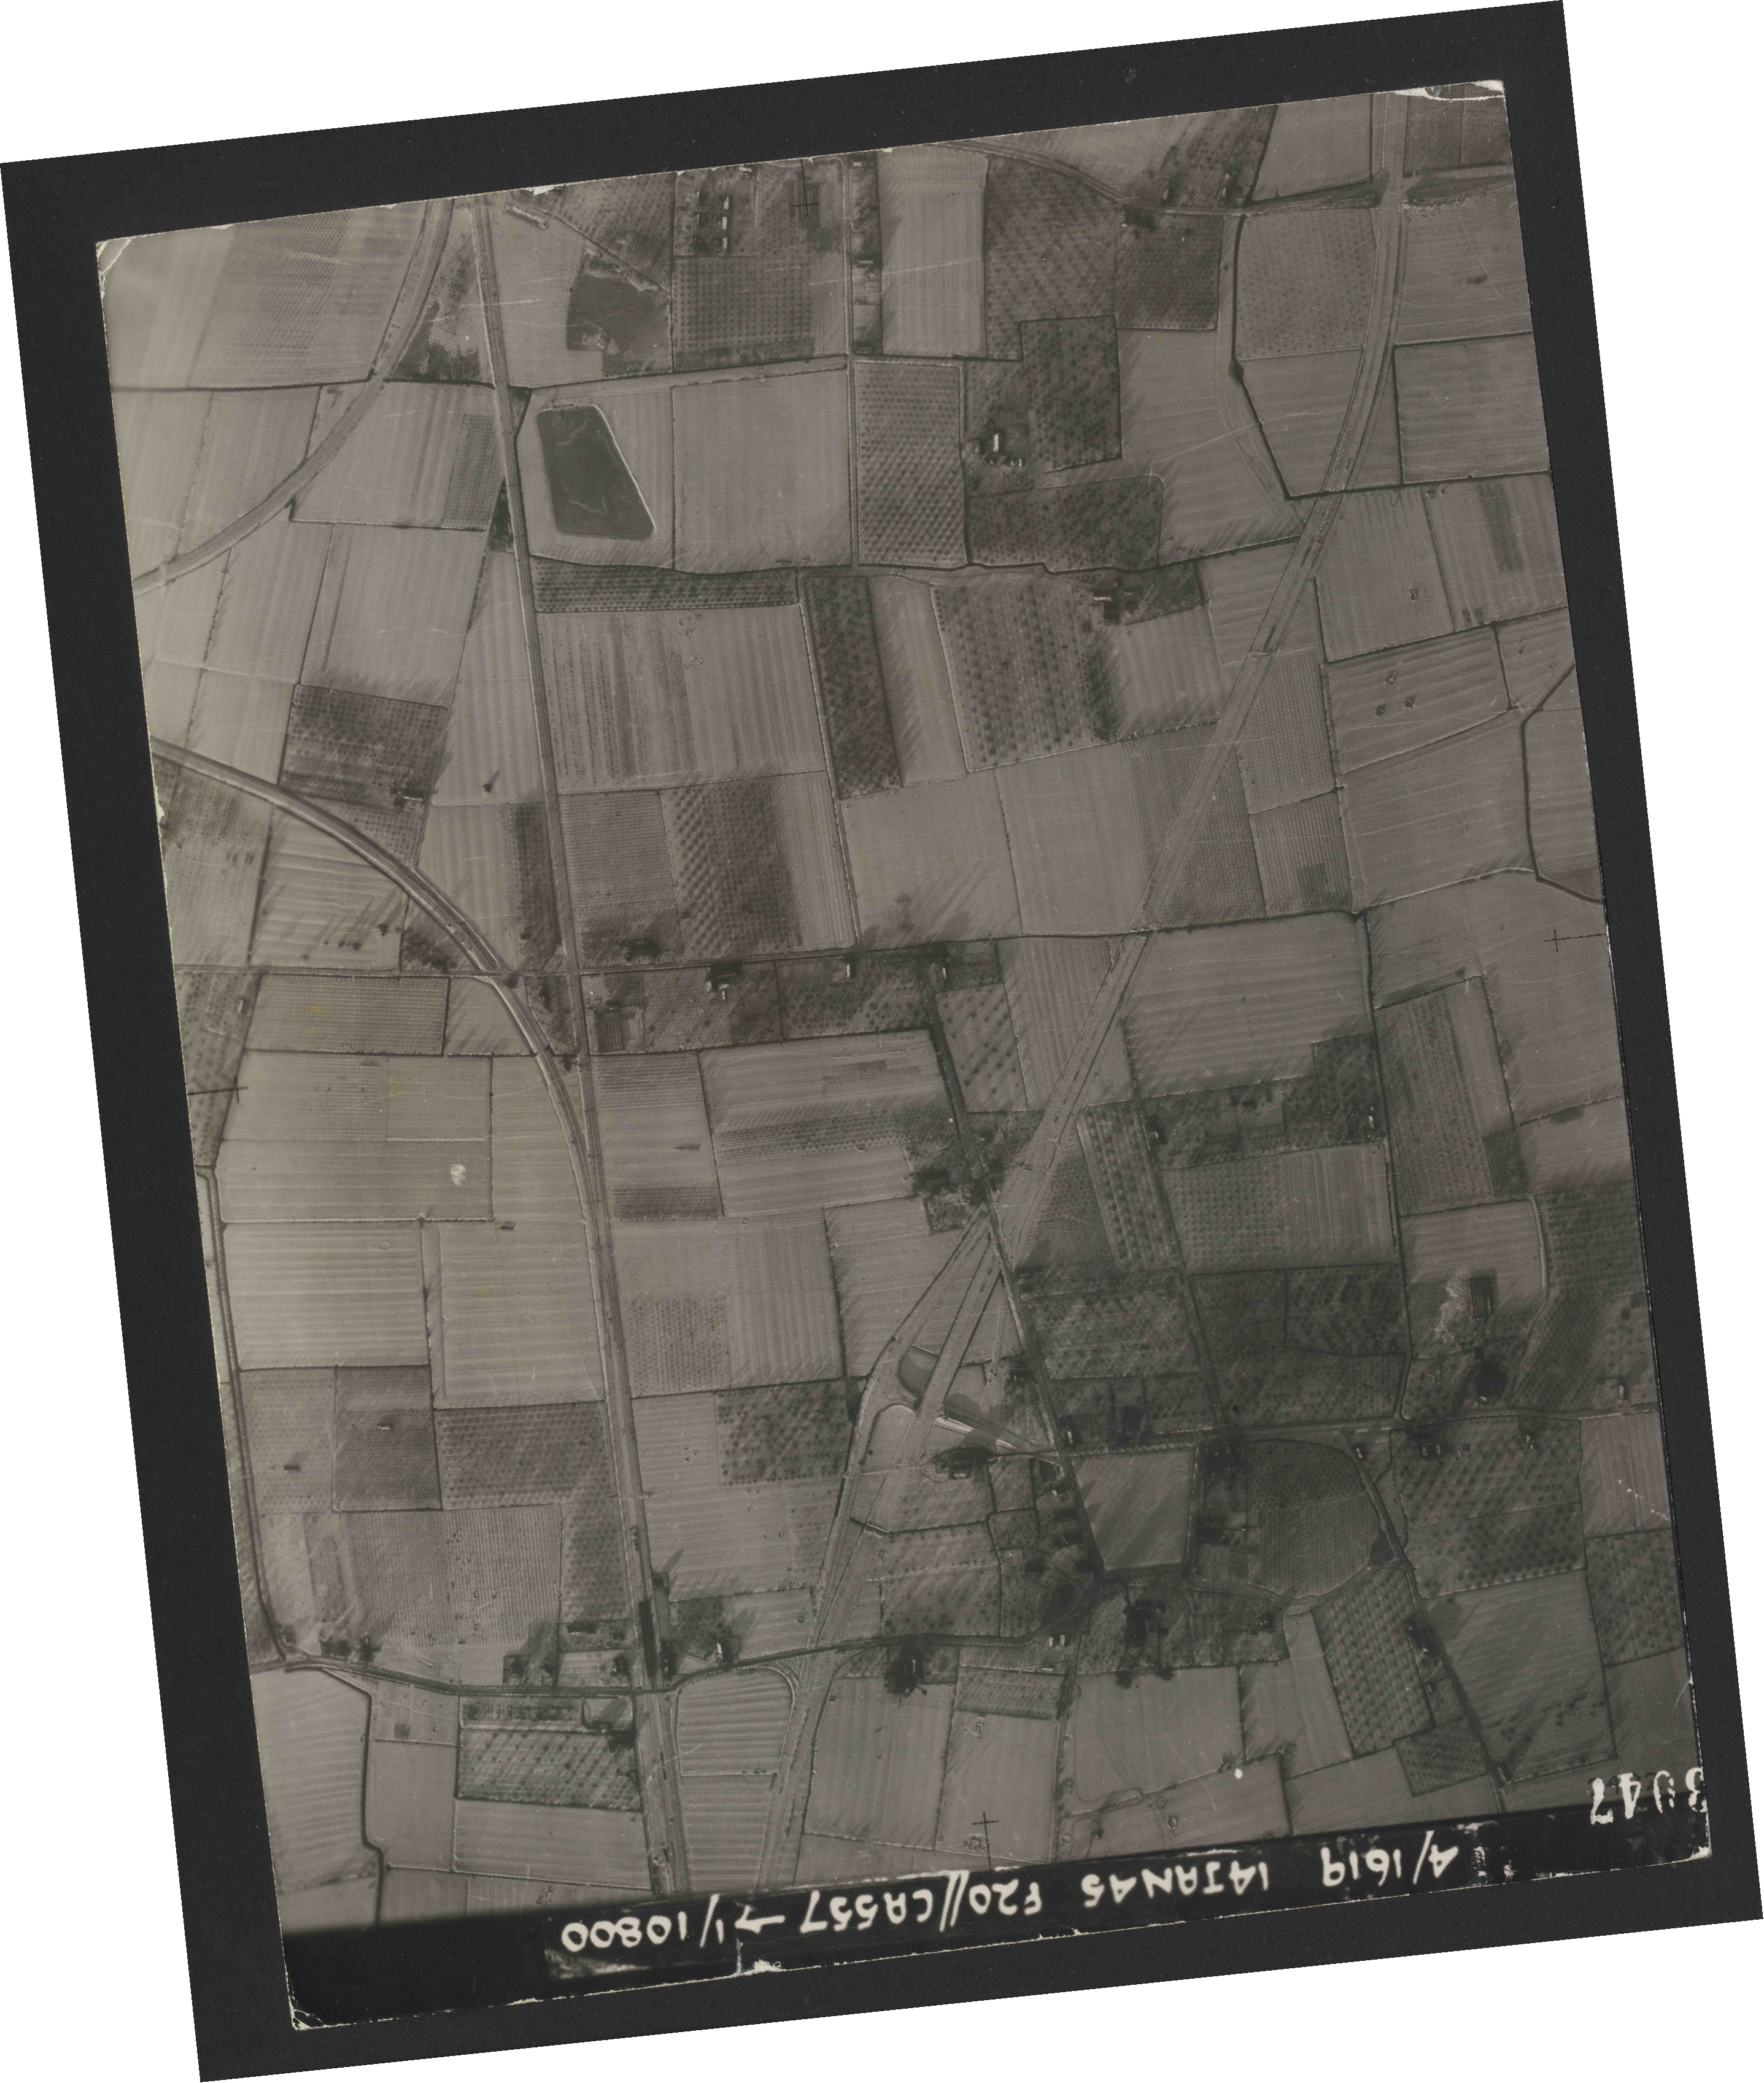 Collection RAF aerial photos 1940-1945 - flight 291, run 04, photo 3047